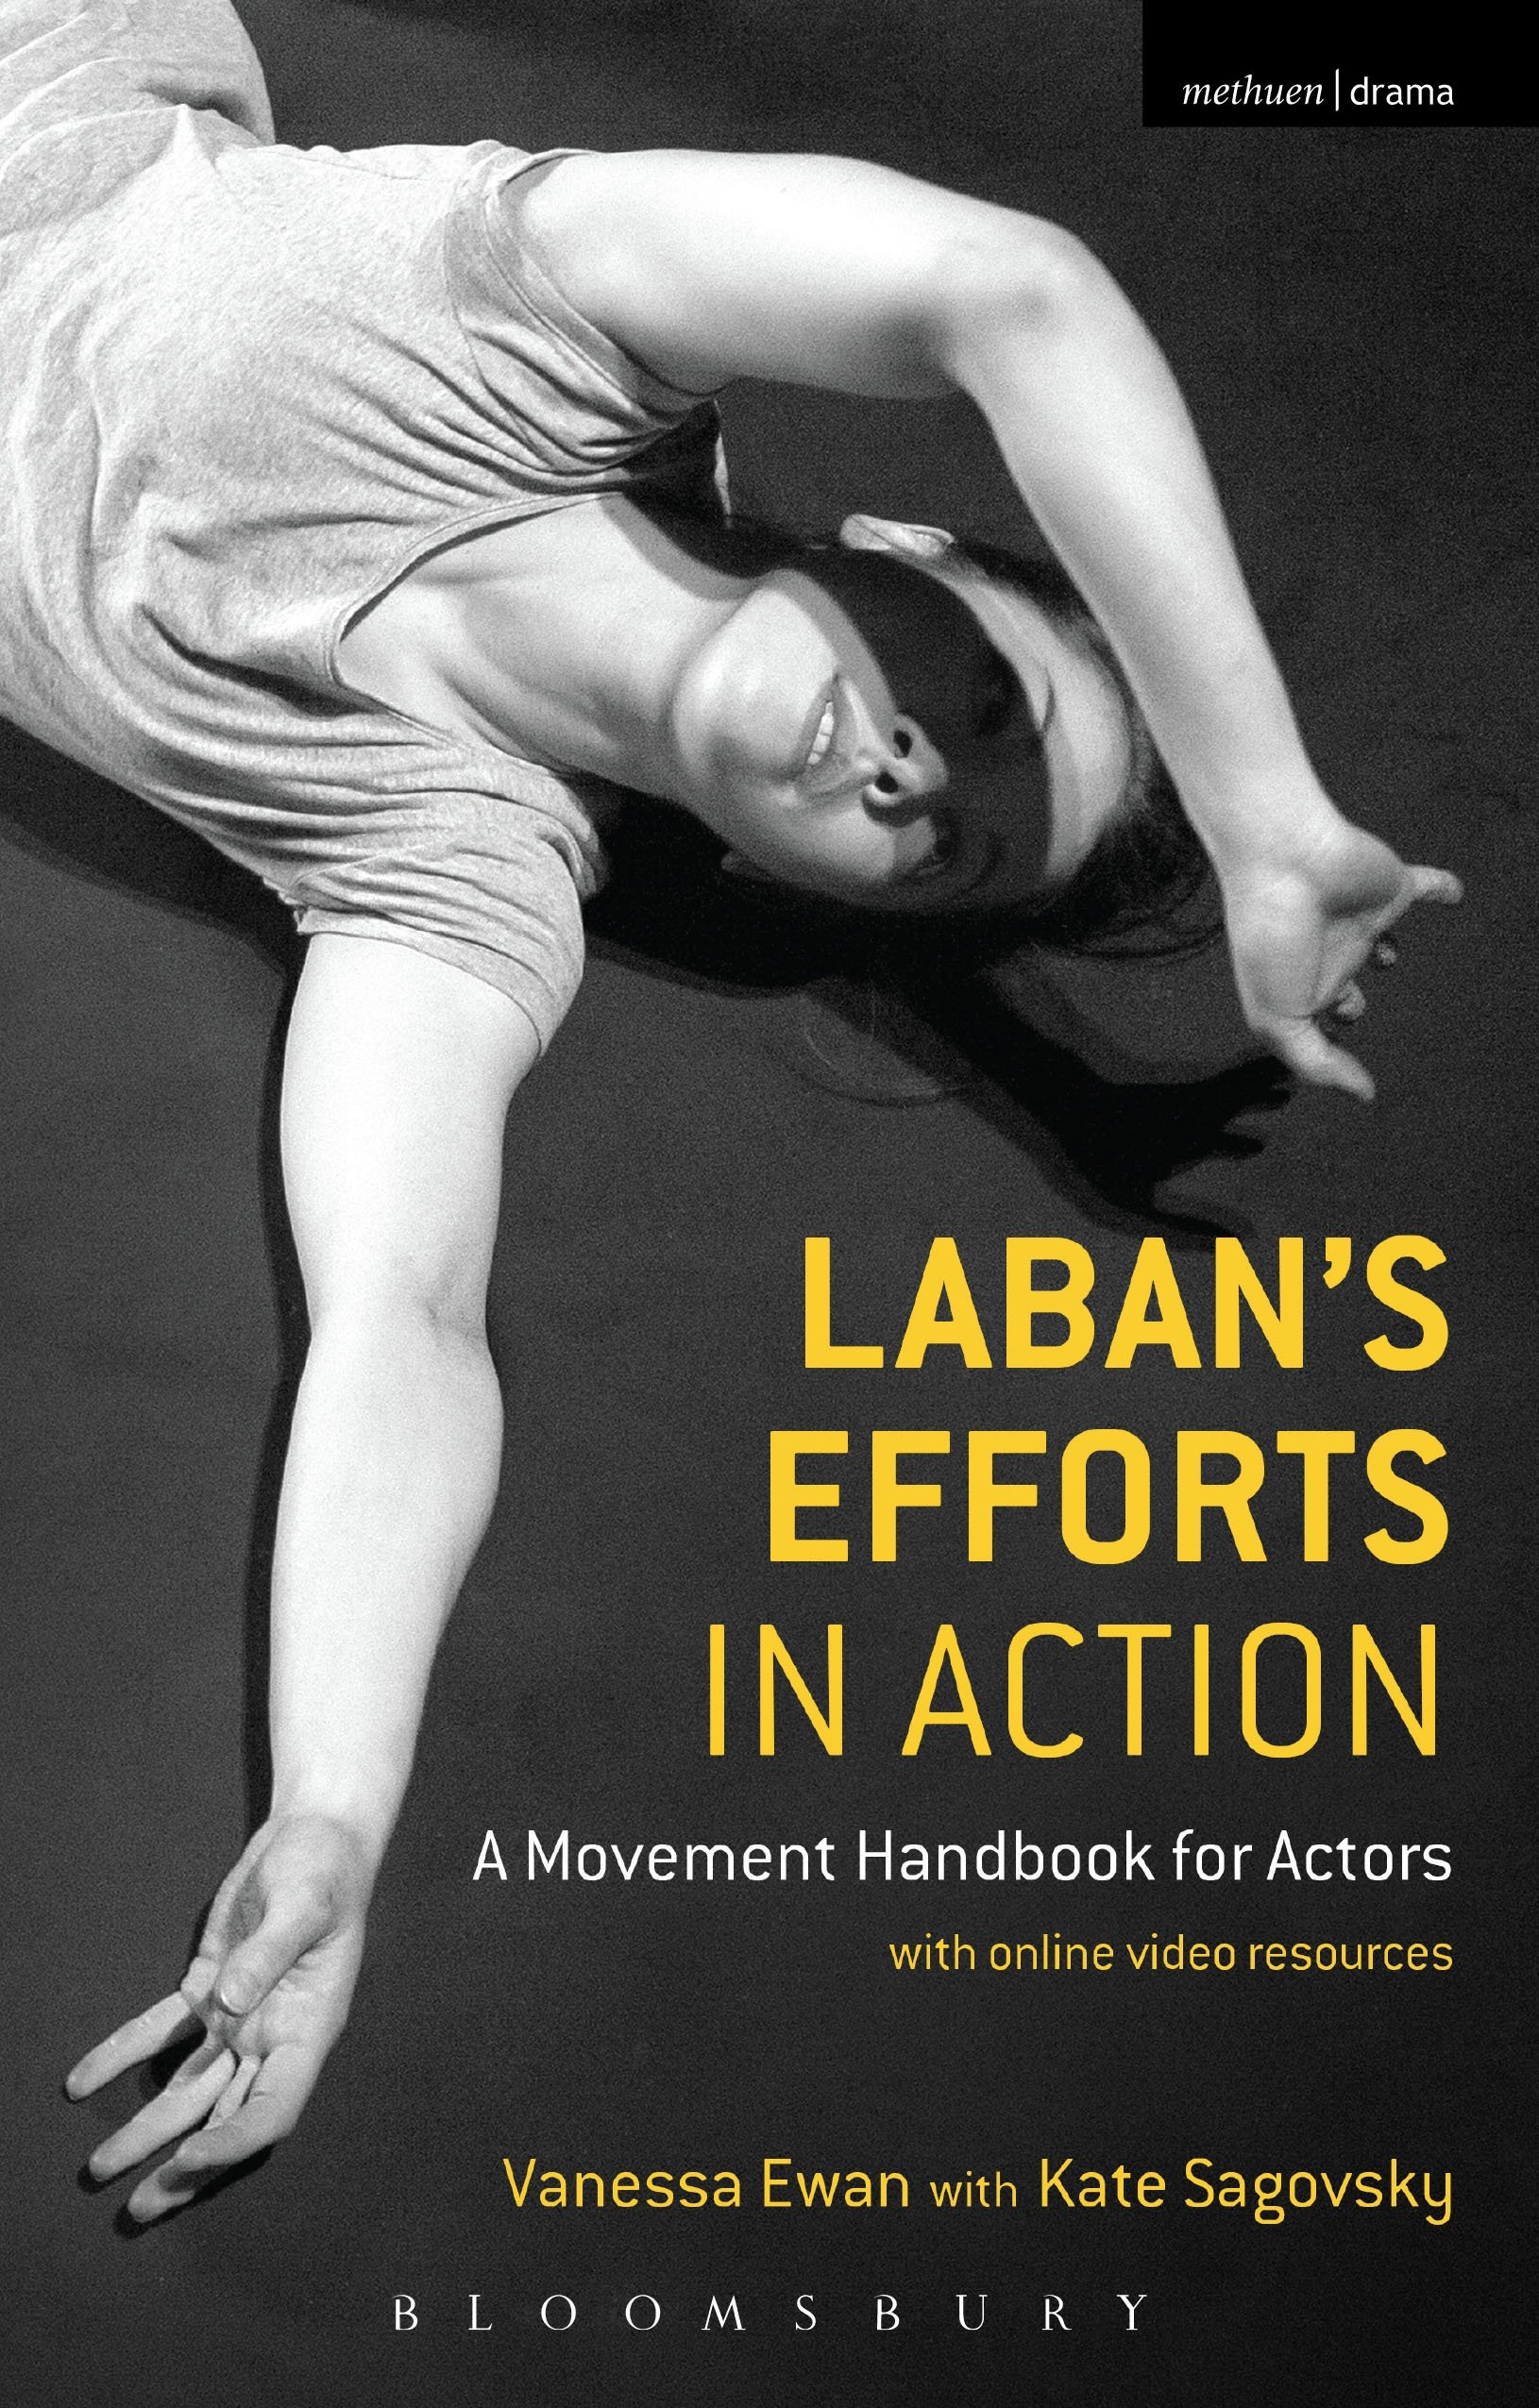 "Appearing in the Book: ""Laban's Efforts in Action"", by Vanessa Ewan and Kate Sagovsky"